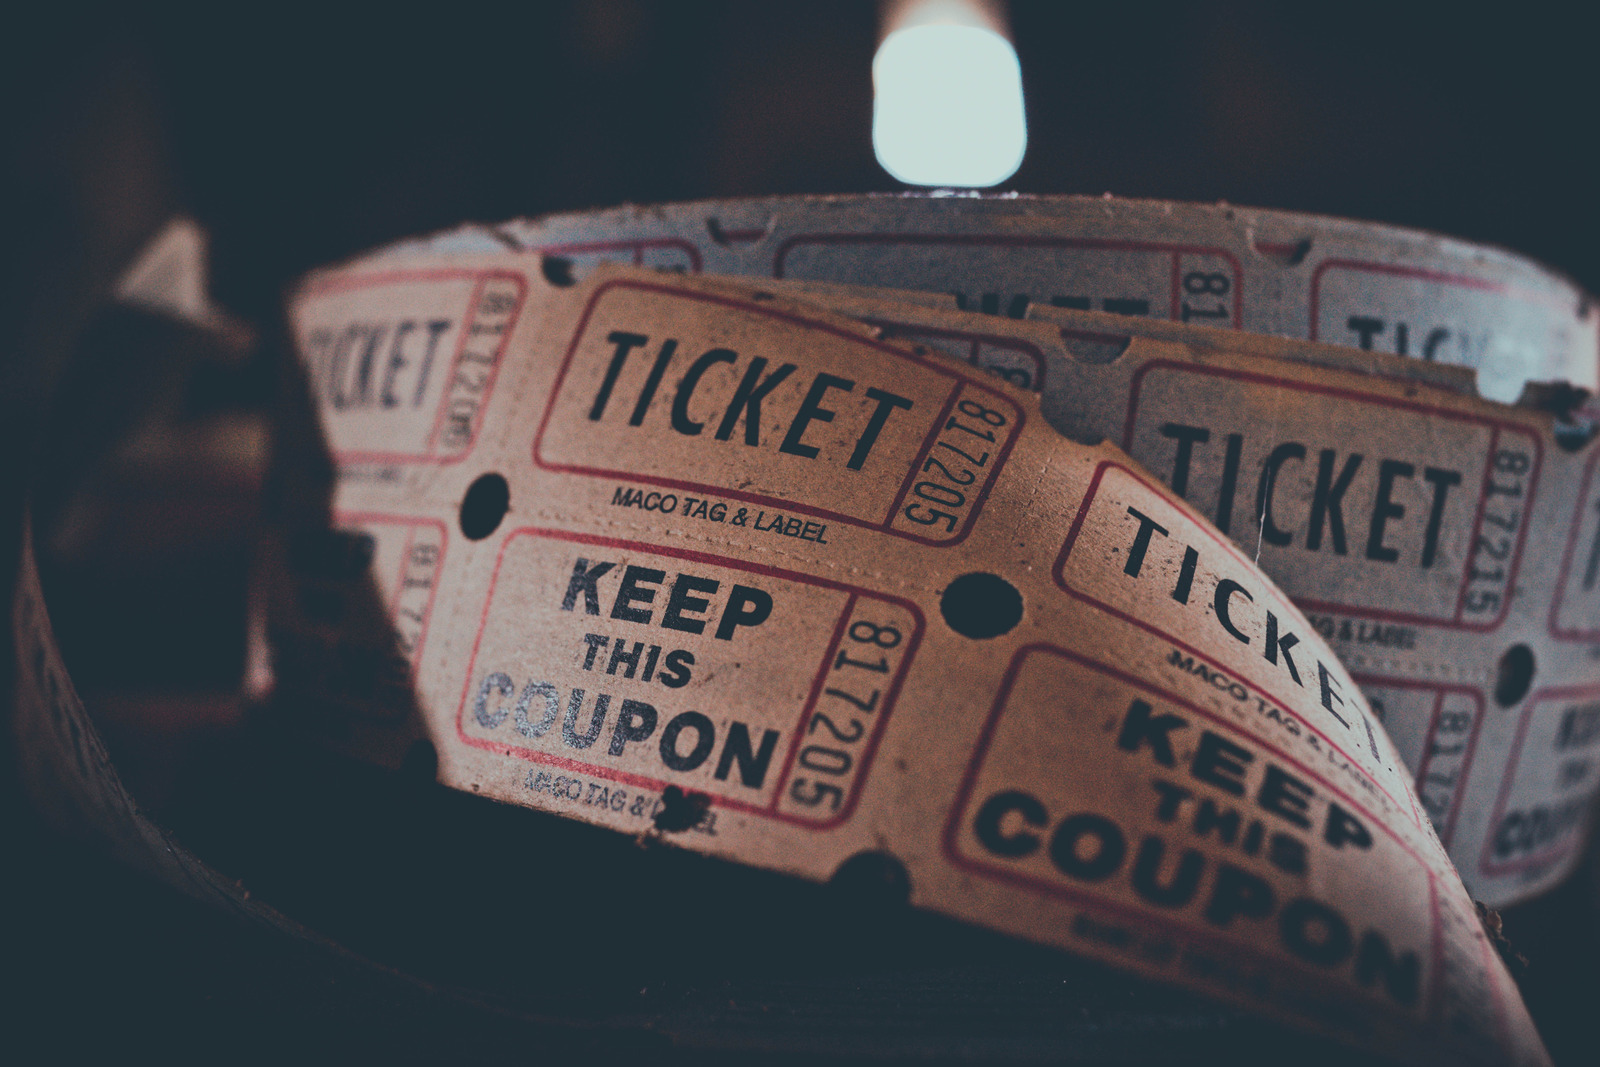 Ticket-image-social-media